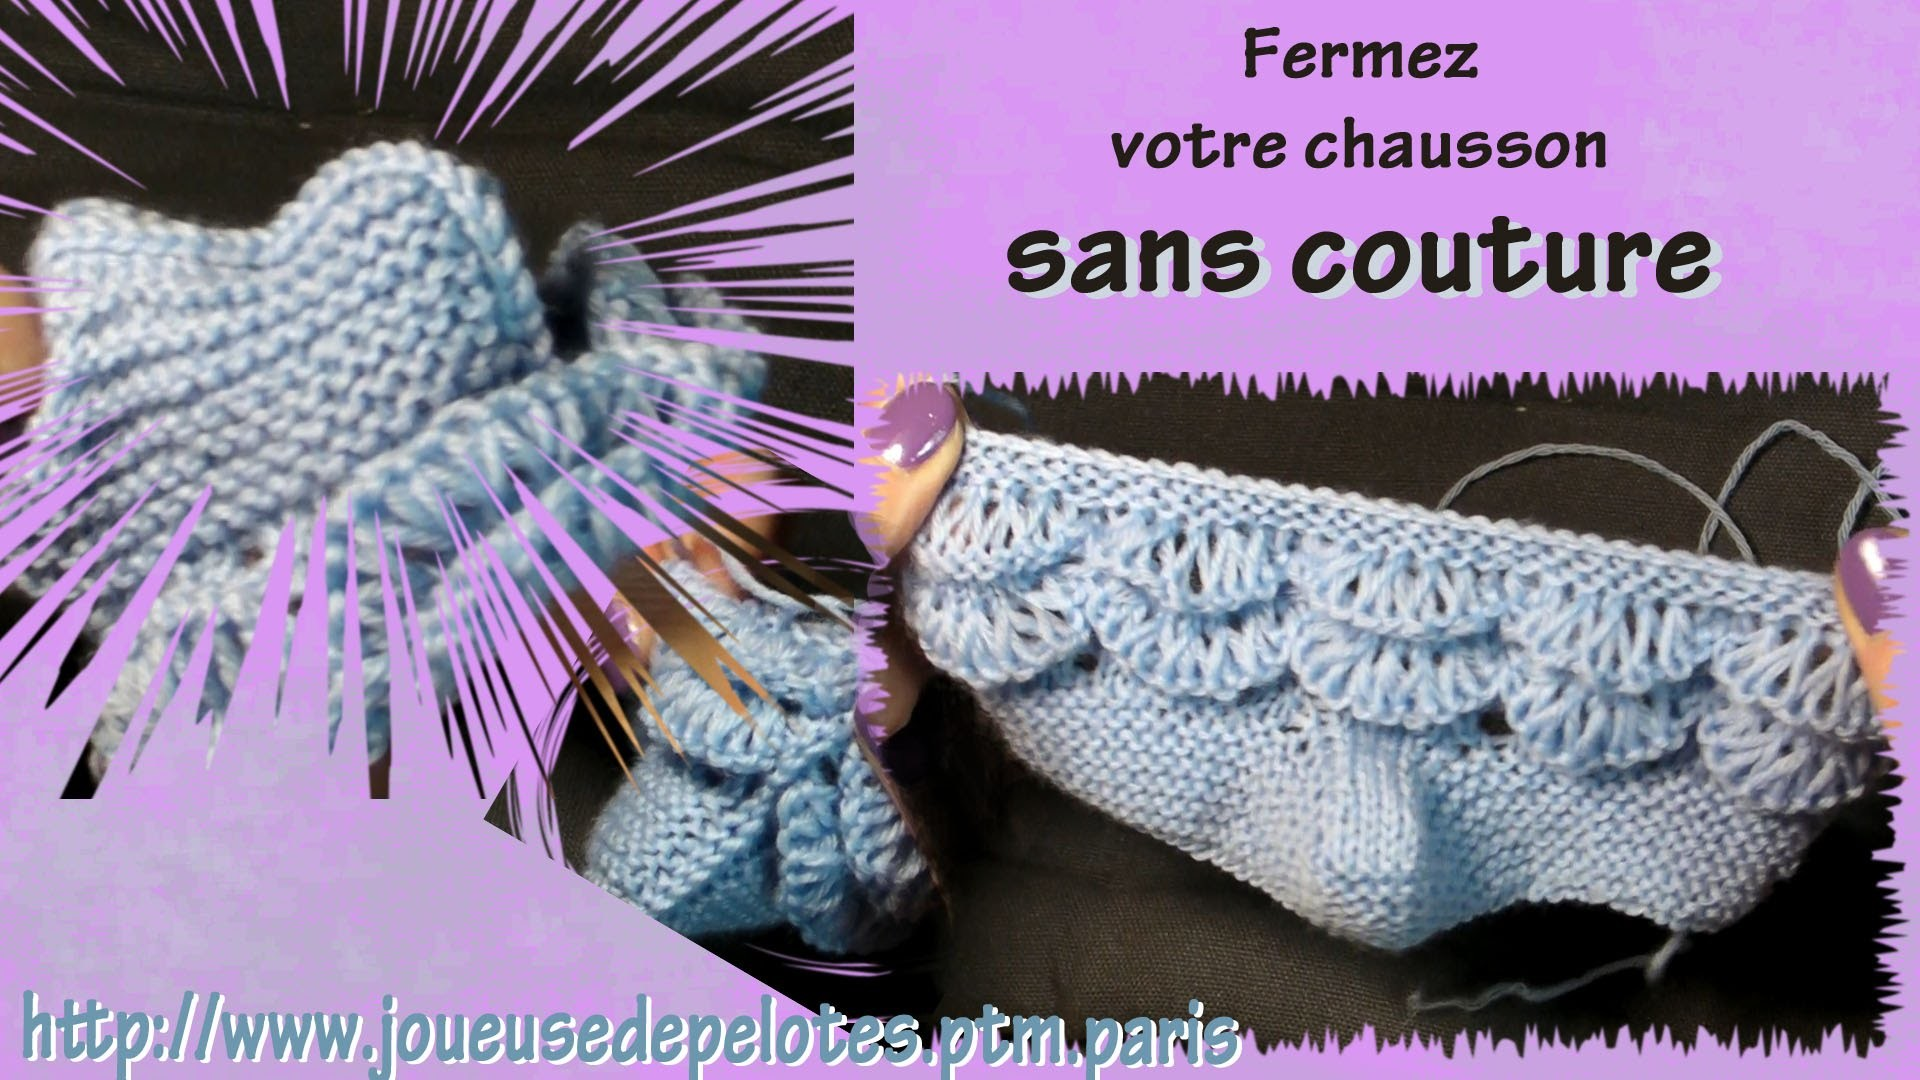 tuto tricot chaussons pour b 233 b 233 partie iii fermer sans couture my crafts and diy projects